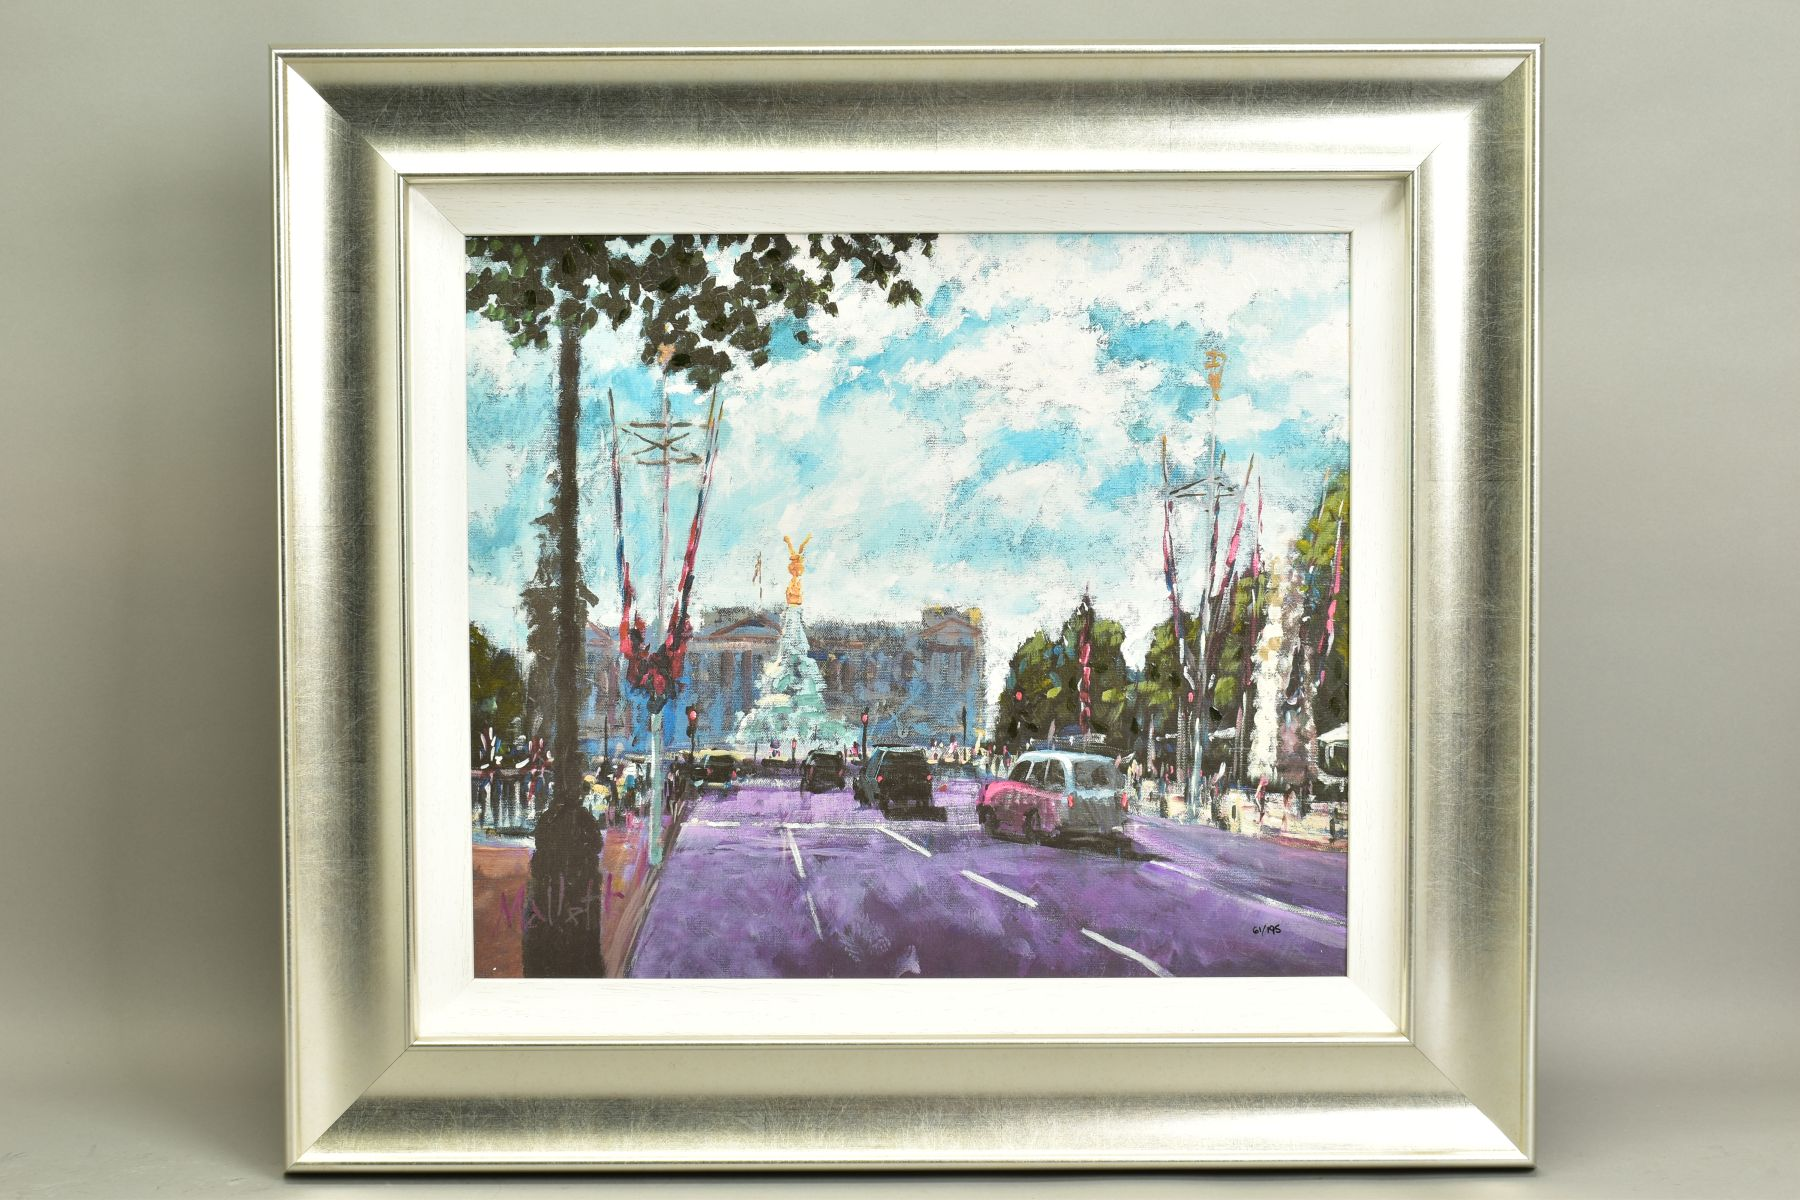 TIMMY MALLETT (BRITISH CONTEMPORARY), 'Celebrating On The Mall', a Limited Edition print of a London